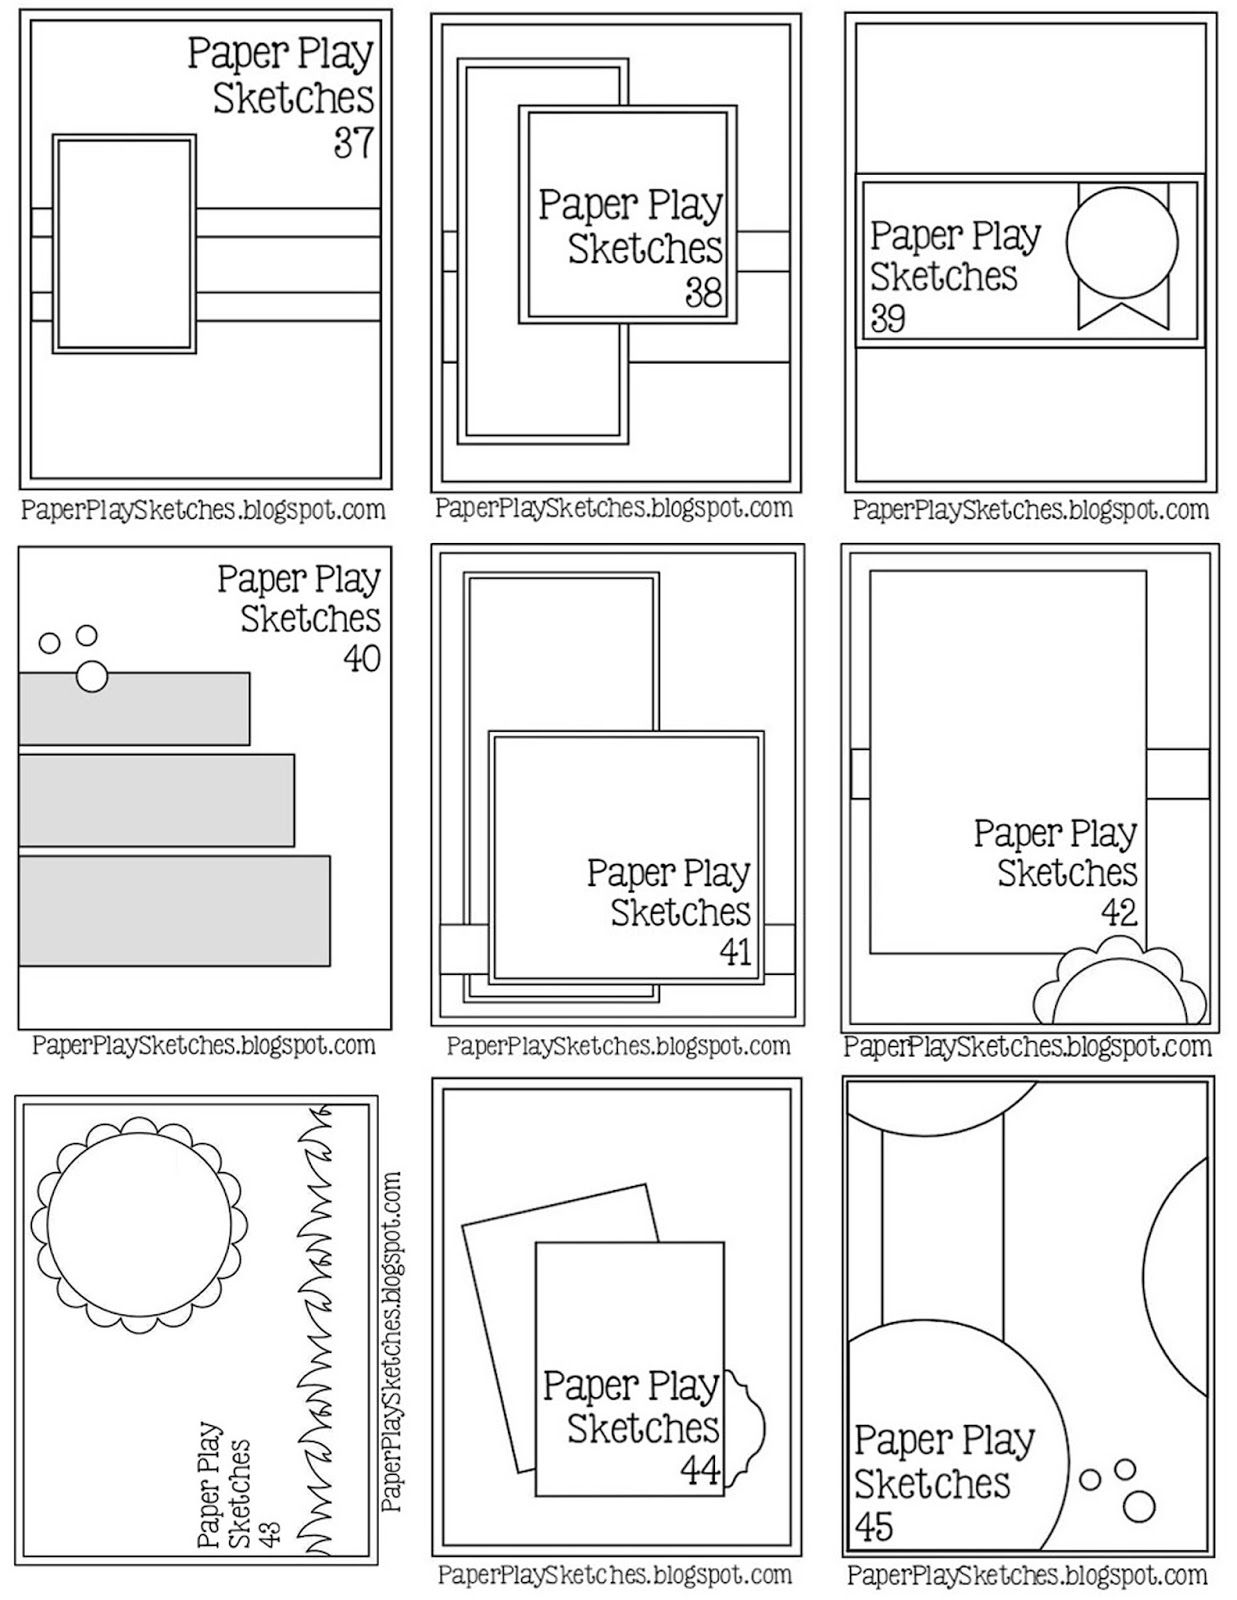 Paper Play Sketches Sketch Sheets To Print